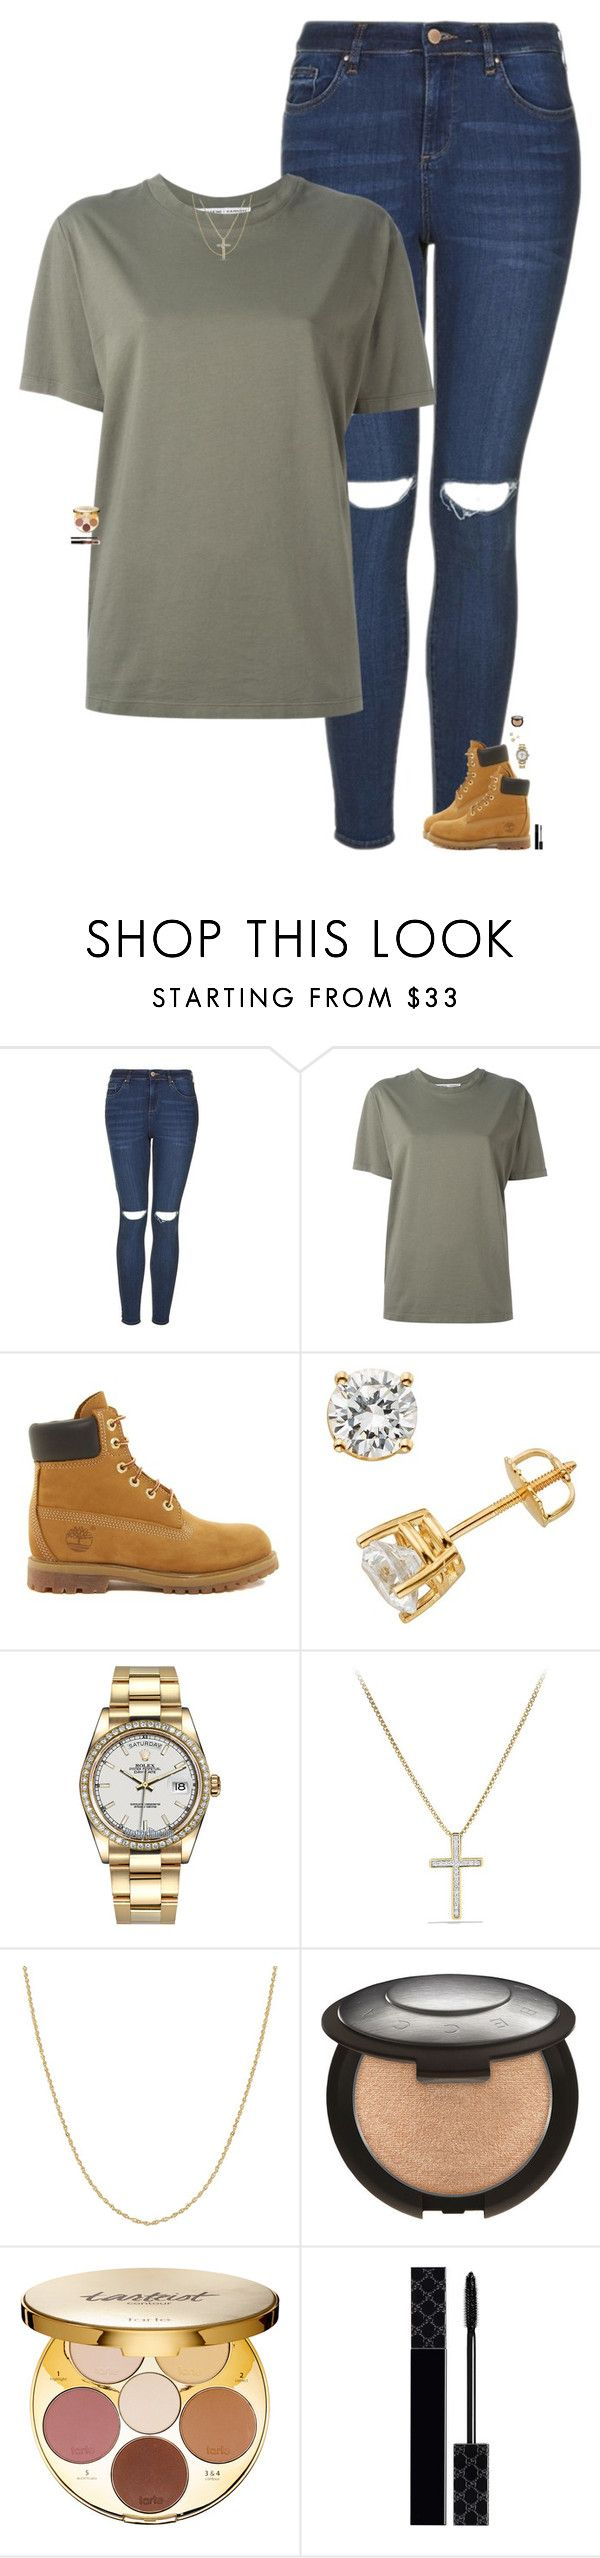 """""""why does what people think of you matter if you're happy the way you are?"""" by maggie-prep ❤ liked on Polyvore featuring Topshop, Katharine Hamnett, Timberland, Rolex, David Yurman, Fremada, tarte and Gucci"""